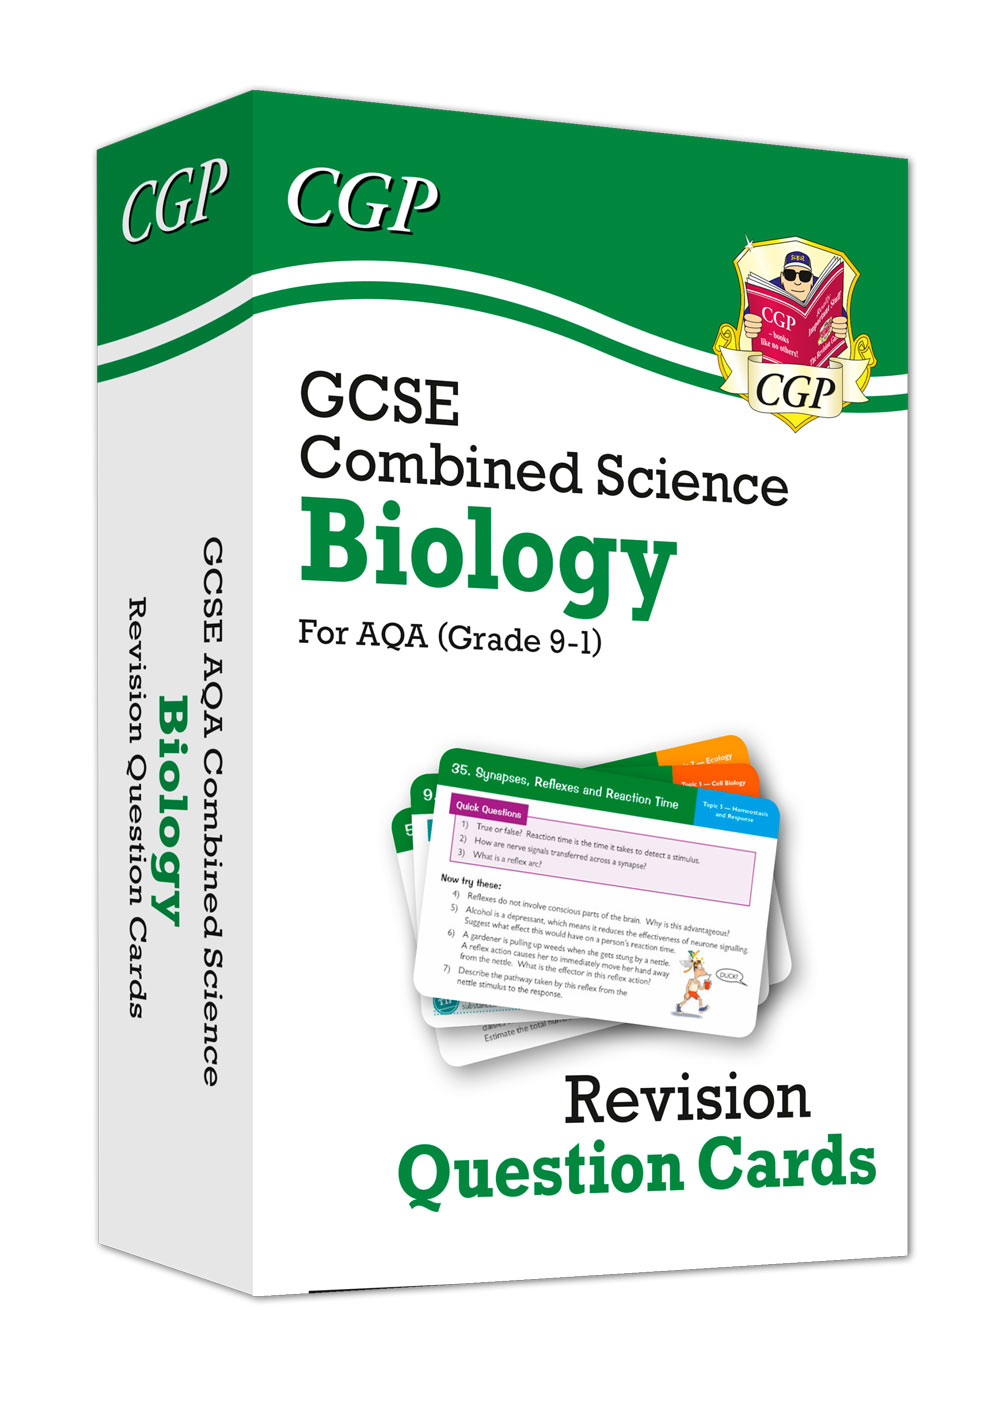 GCSE Science | CGP Books